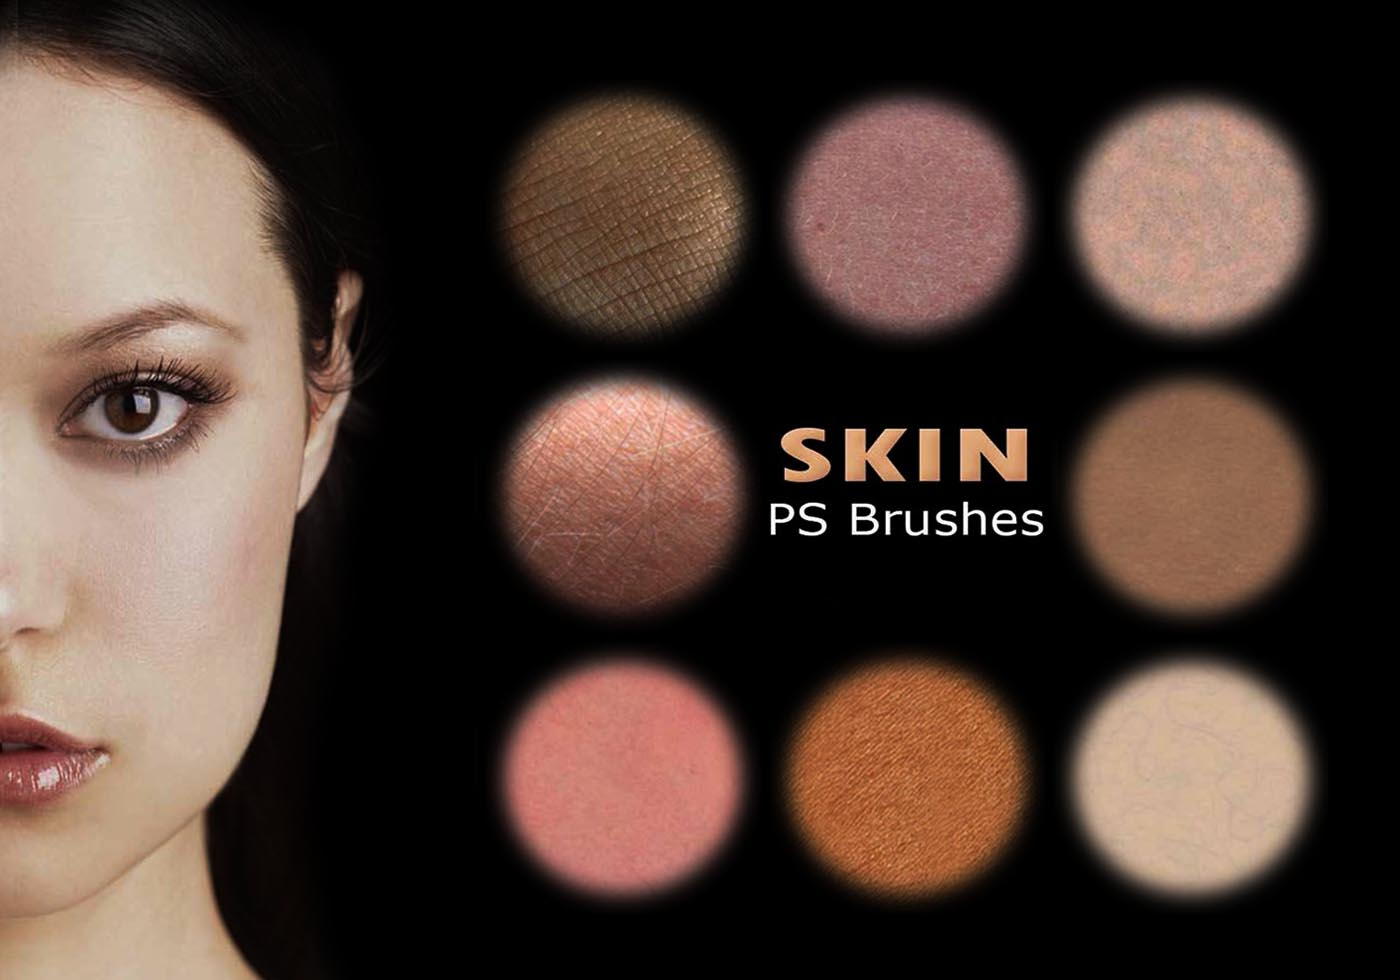 20 Human Skin PS Brushes abr. Vol. 7 - Free Photoshop Brushes at ...